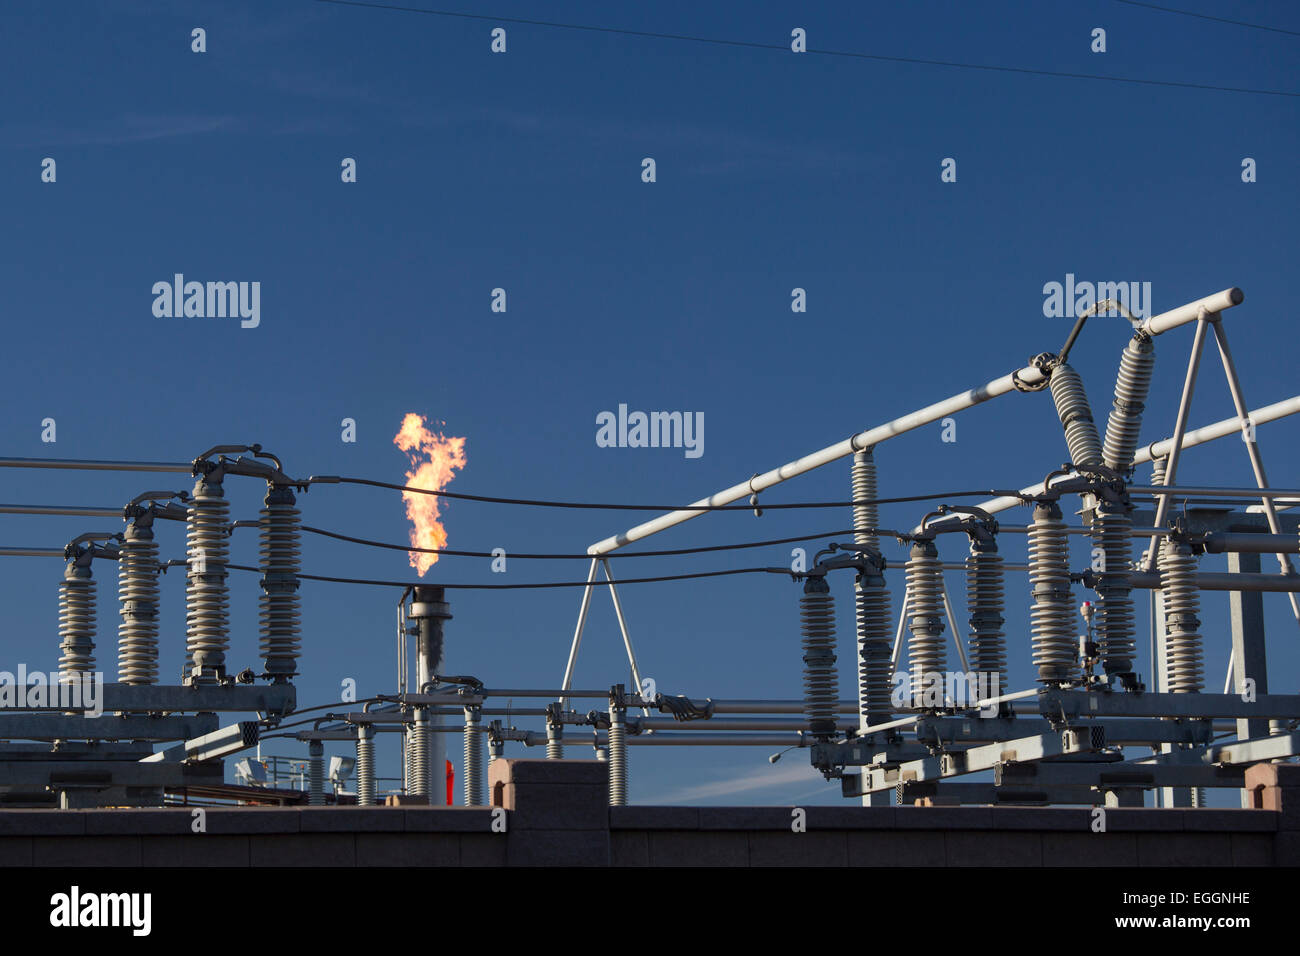 Denver, Colorado - A flare burns off gas at near electrical equipment at Suncor Energy's oil refinery. - Stock Image